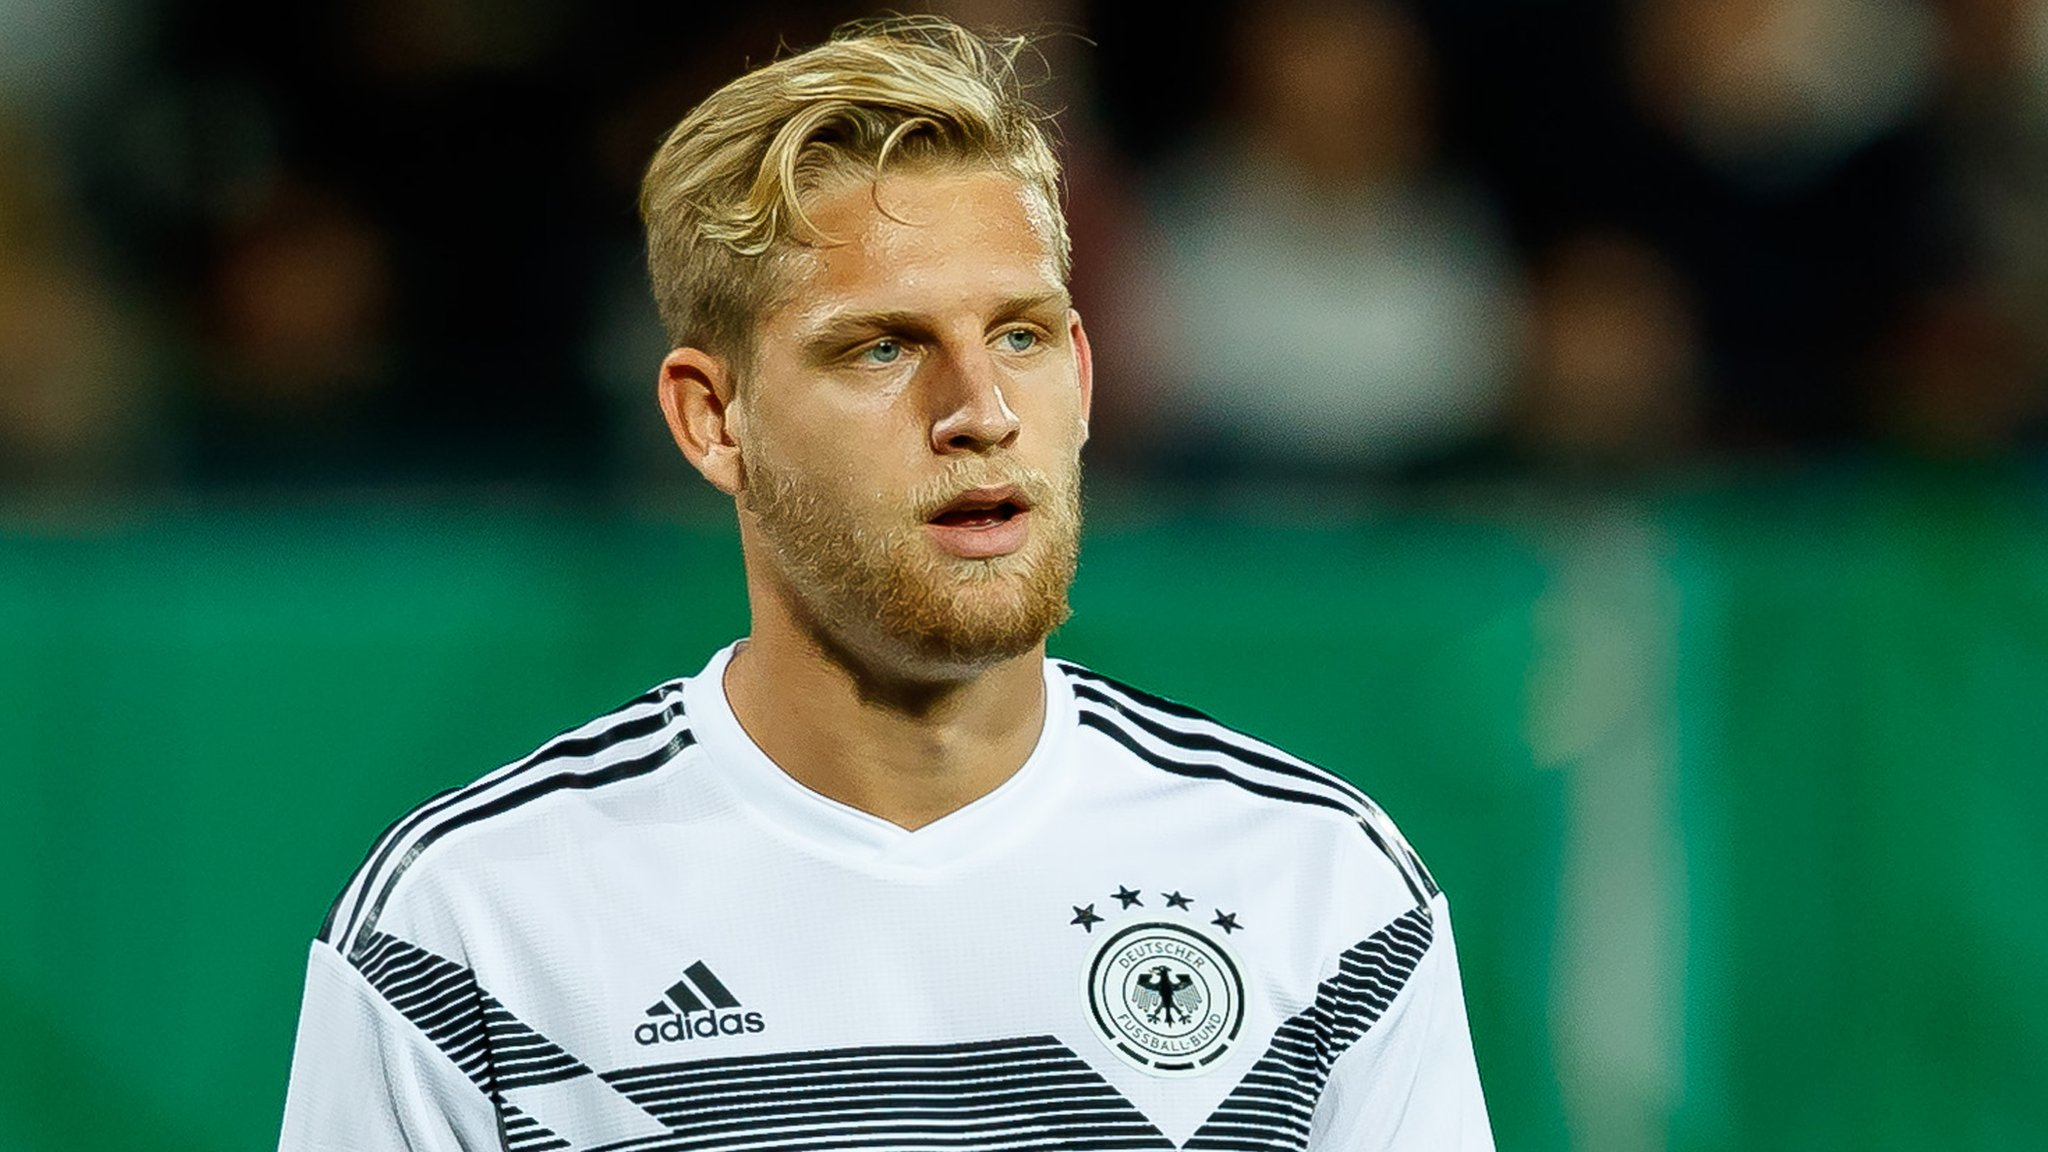 Man Utd & Arsenal compete to sign Germany youngster - gossip